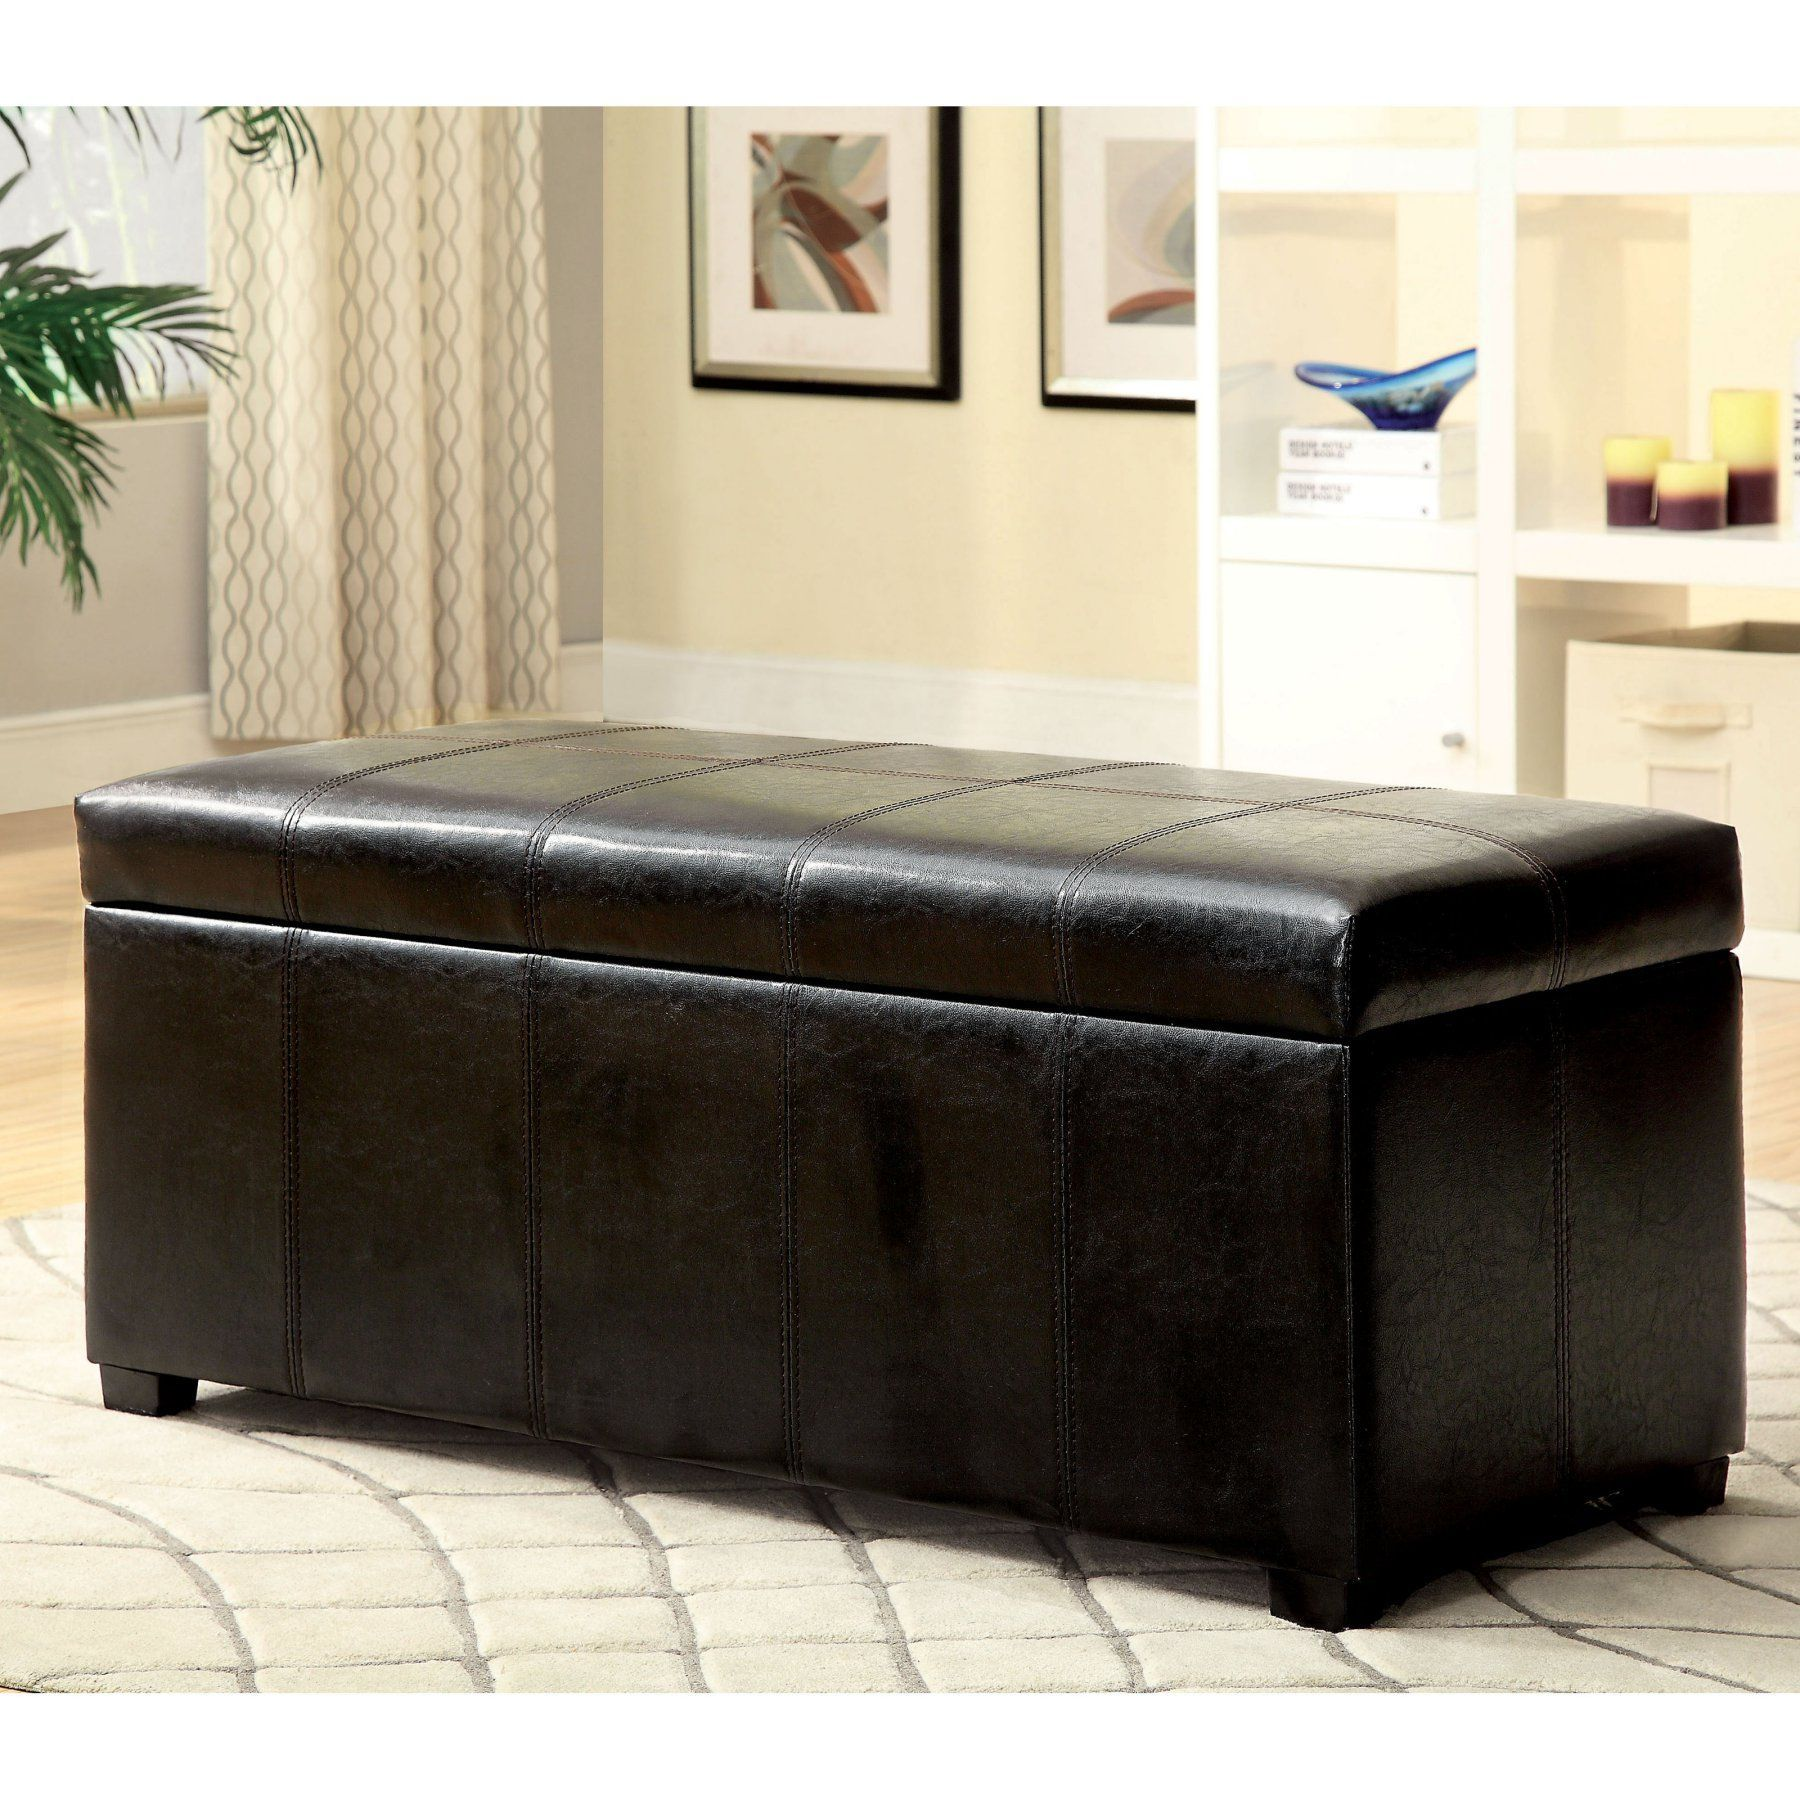 Phenomenal Furniture Of America Guthrie Shoe Storage Ottoman Idf Caraccident5 Cool Chair Designs And Ideas Caraccident5Info